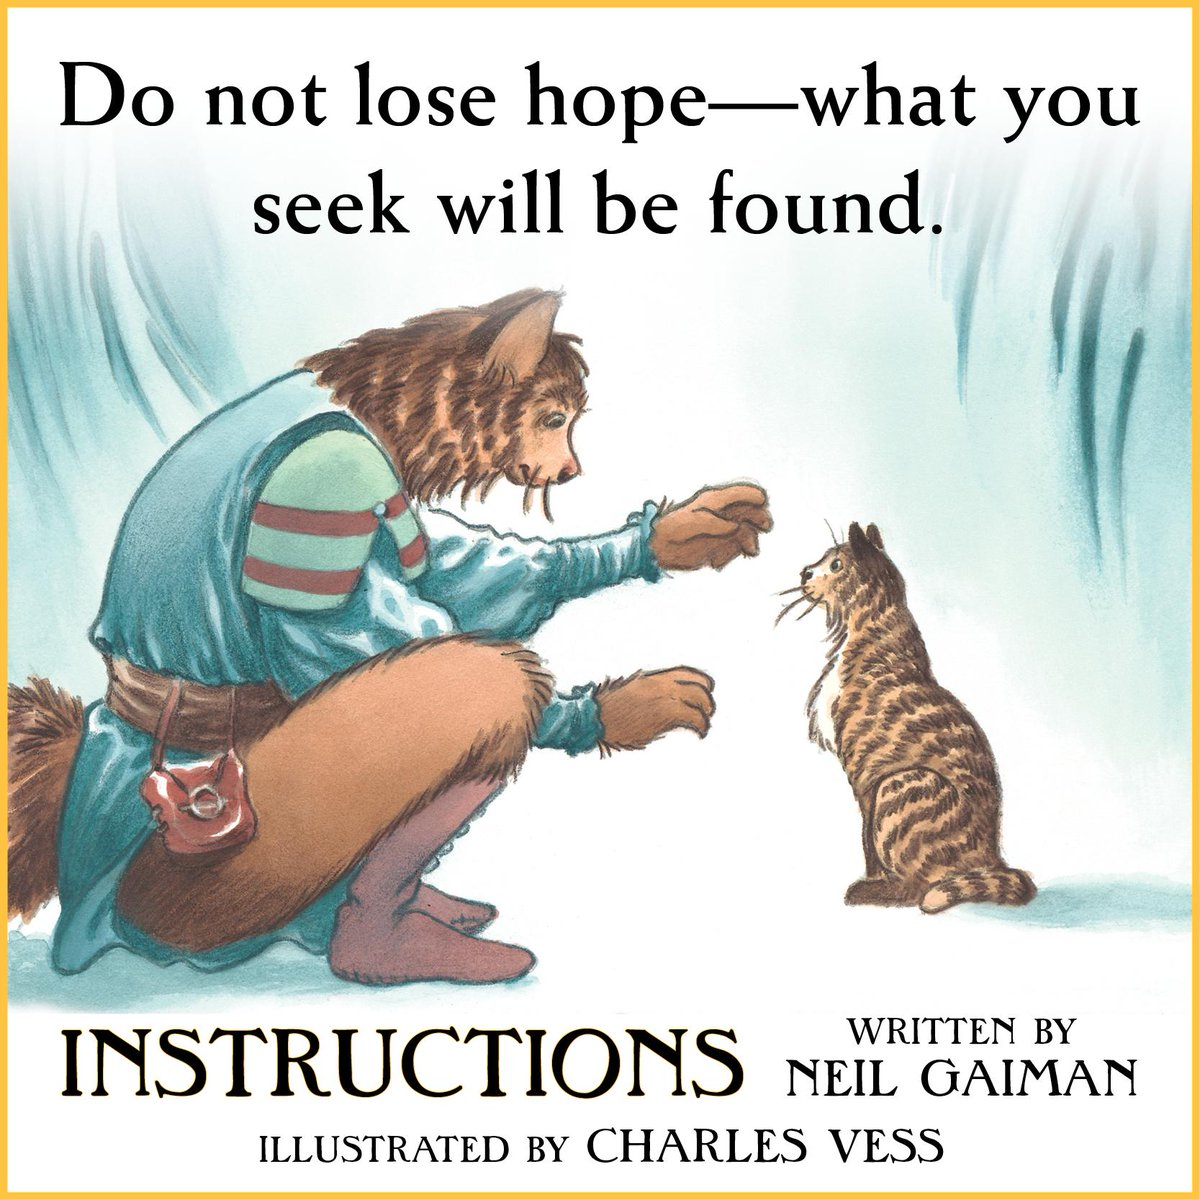 """Do not lose hope—what you seek will be found."" INSTRUCTIONS by @neilhimself is out! http://t.co/JCLiSeyoO6 http://t.co/hTkVggTXUG"